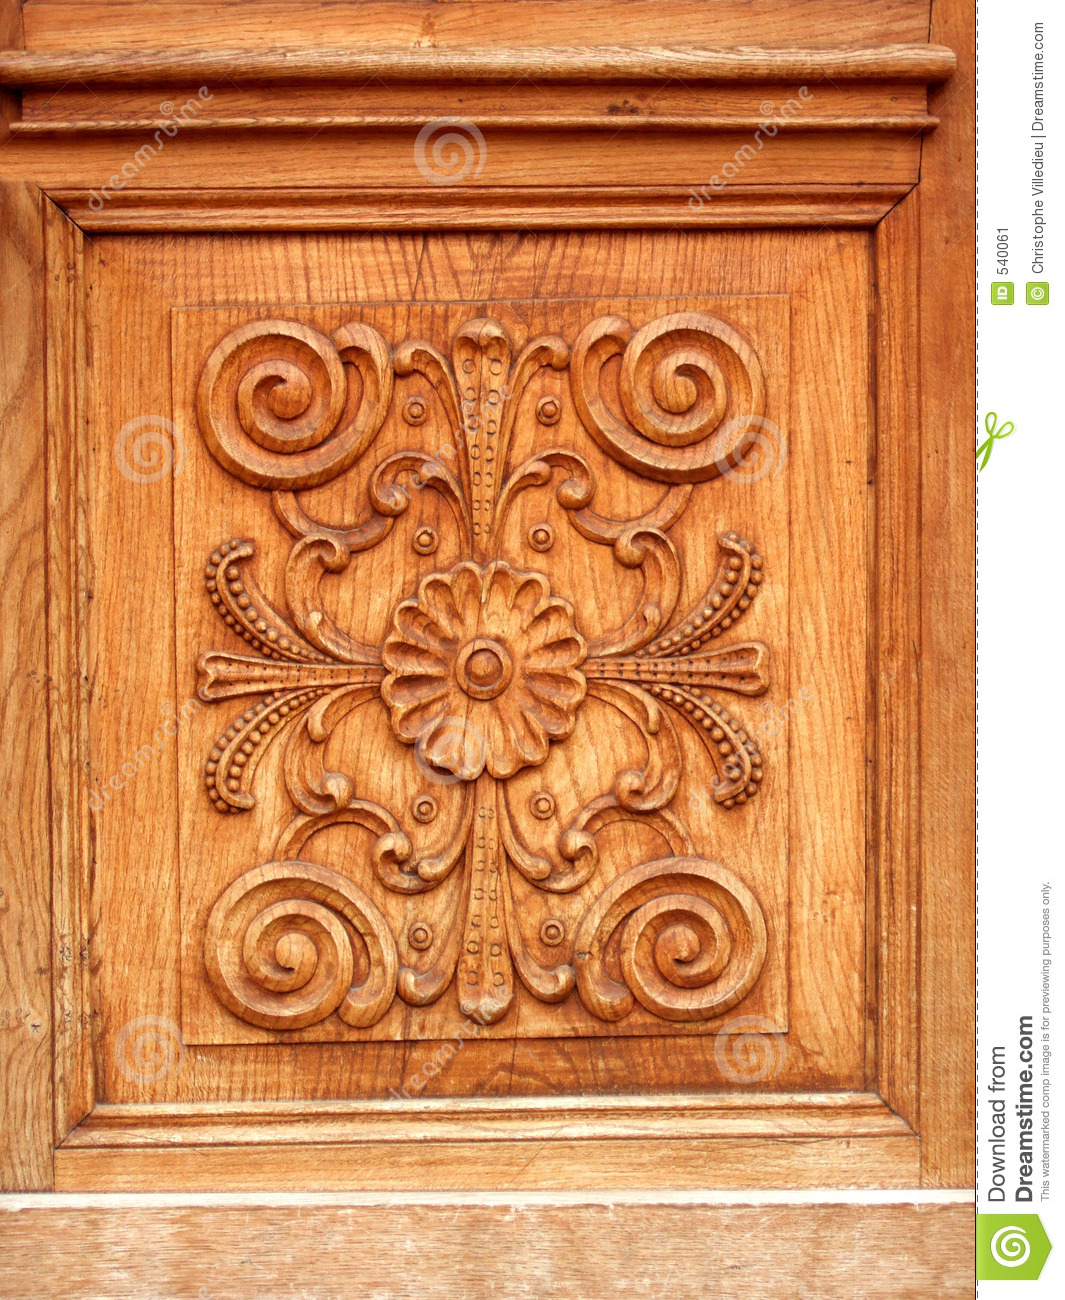 Download Luxury Door Stock Image. Image Of Artistry, Block, Front   540061